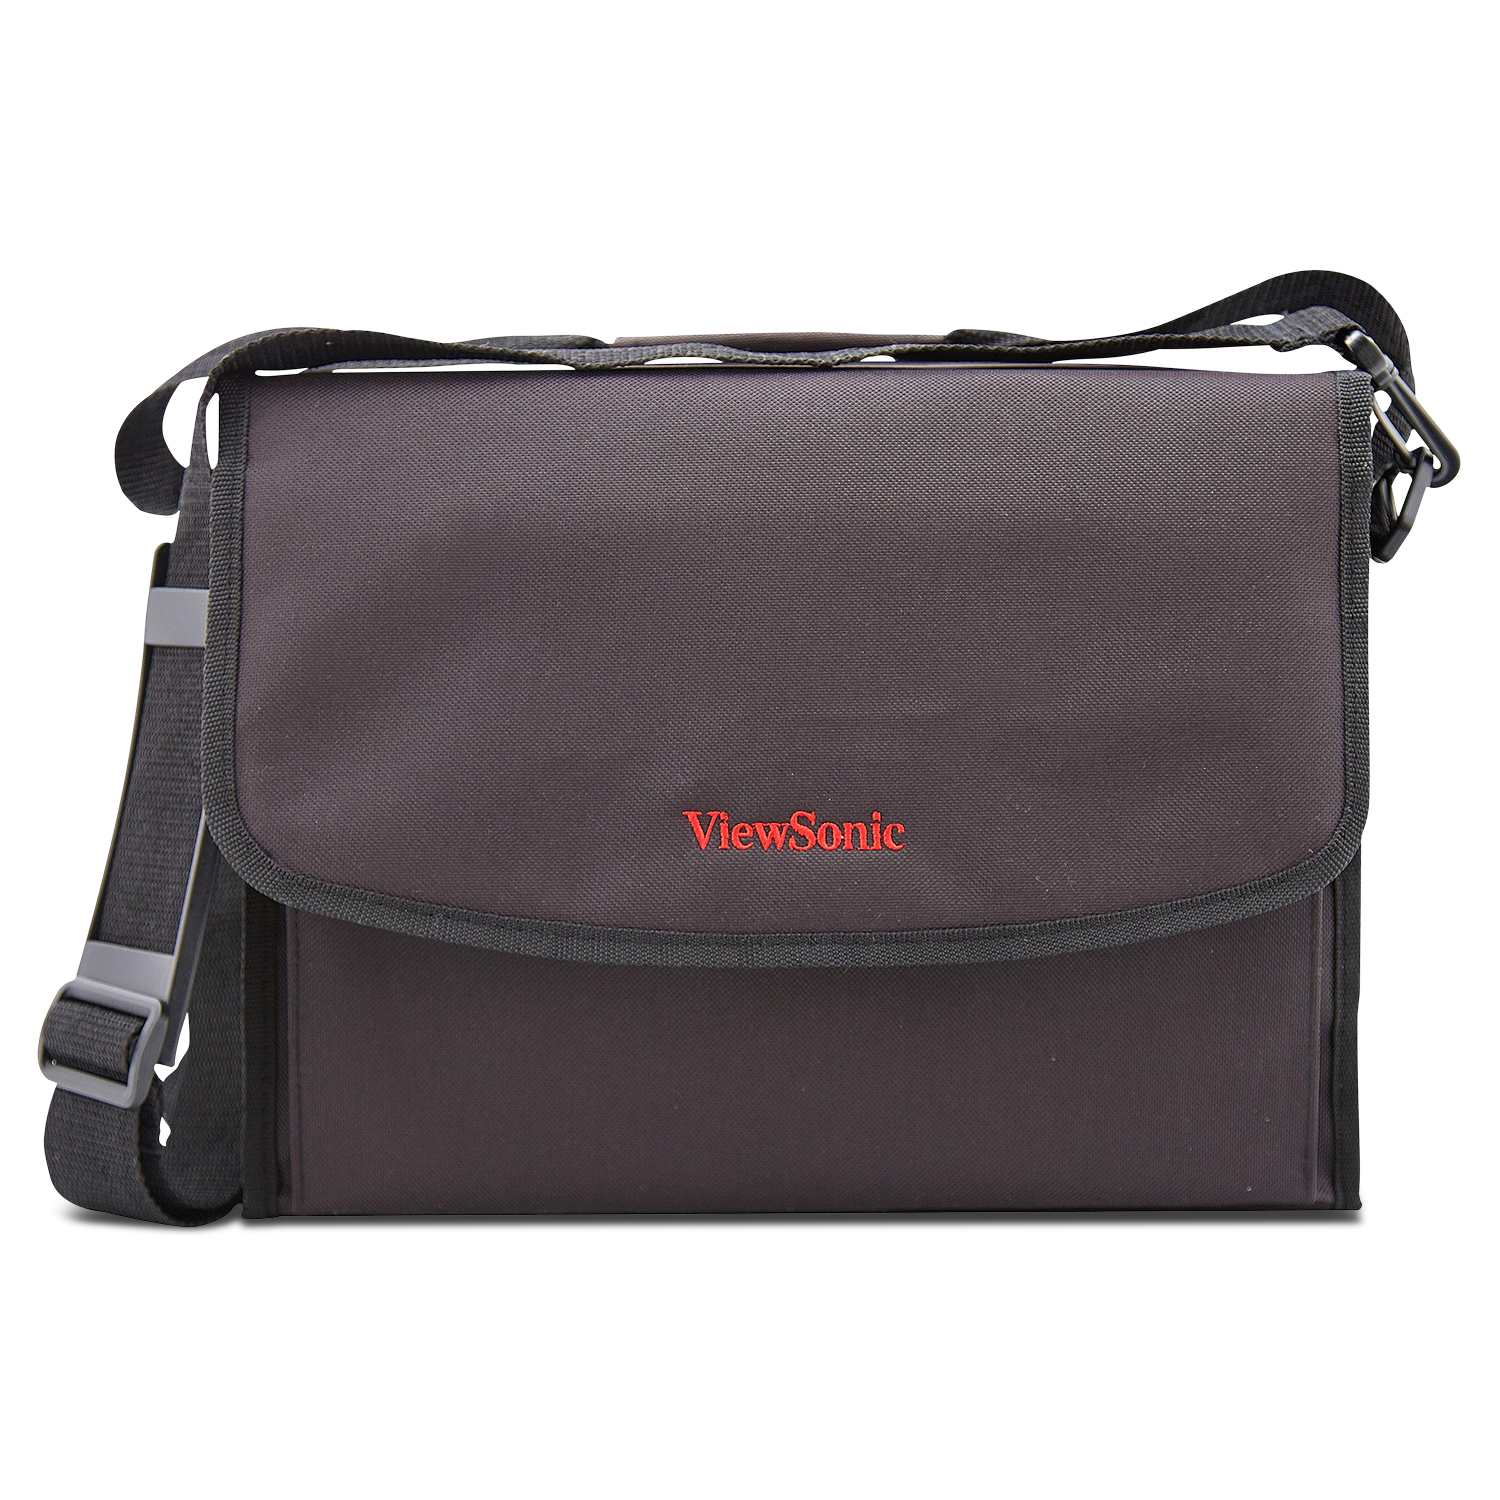 VIEWSONIC PJ-CASE-009 PROJECTOR CASE BLACK